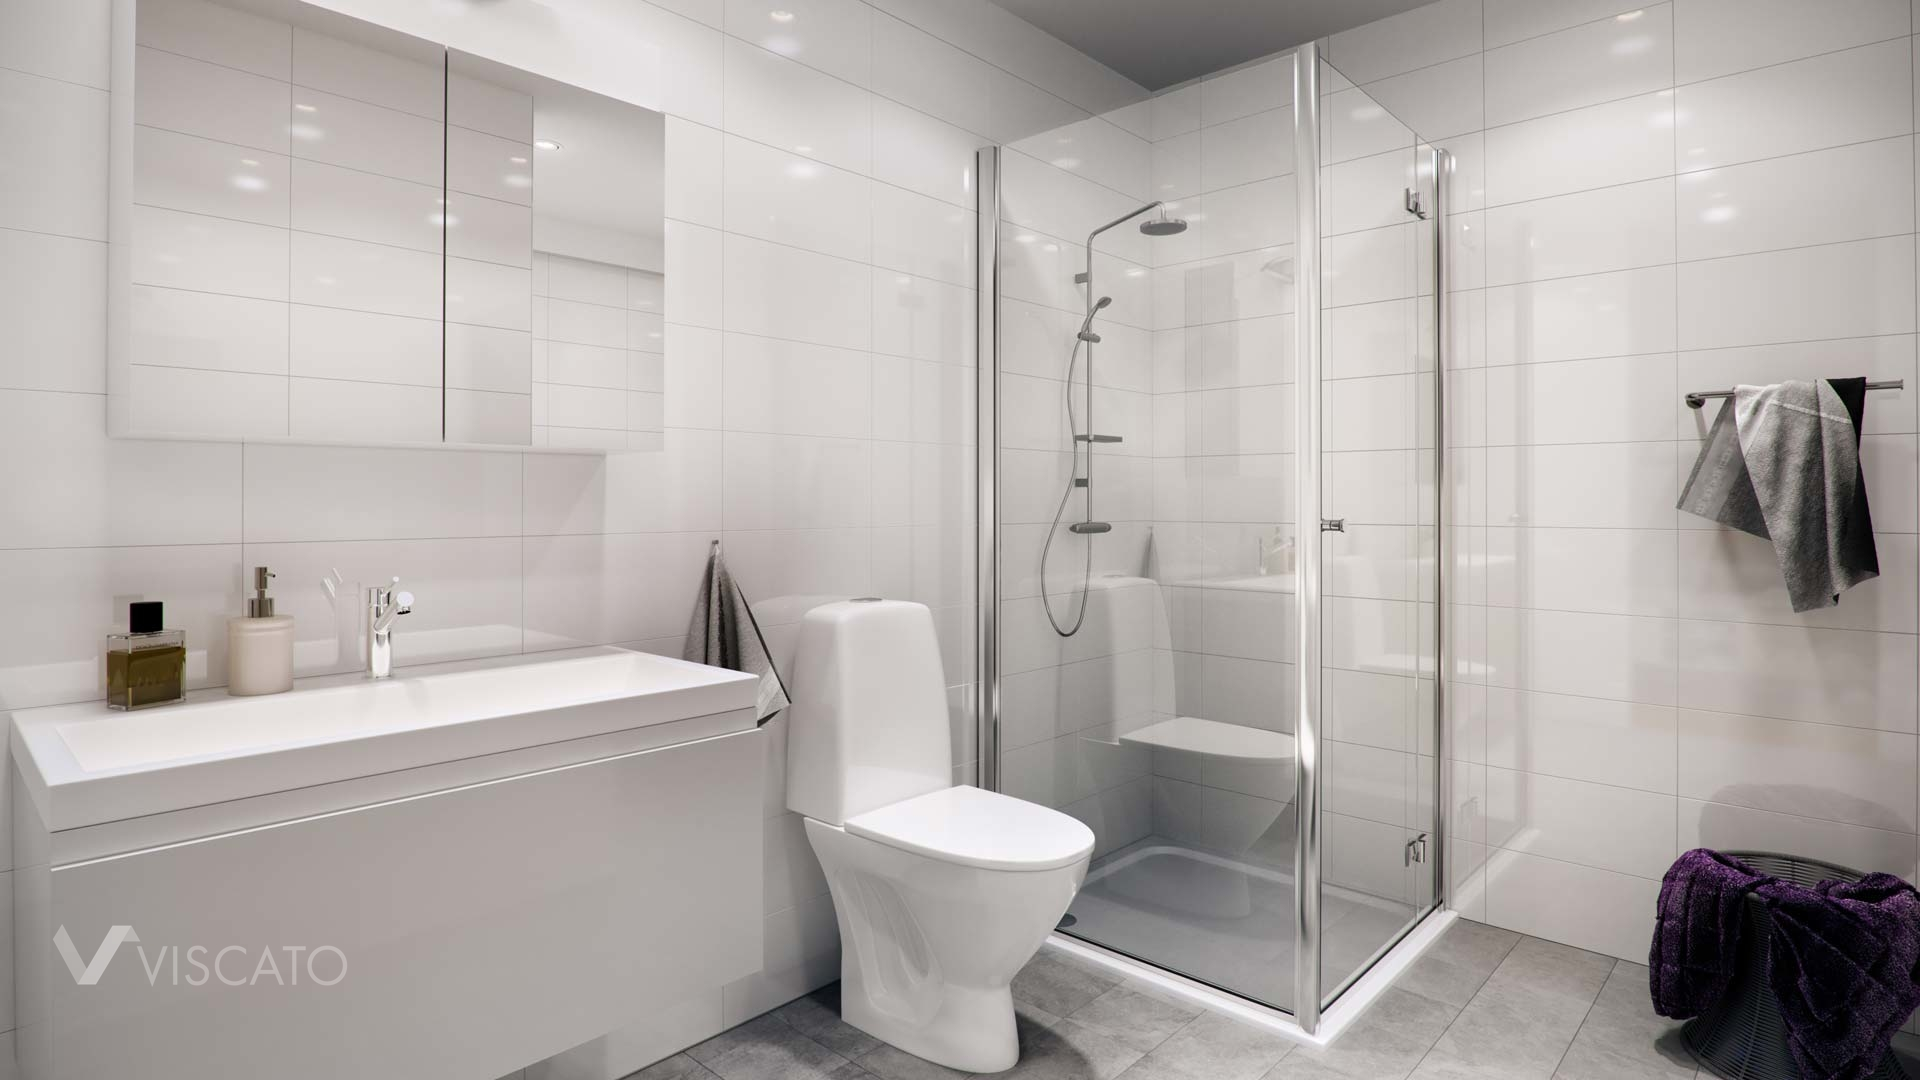 3D bathroom visualization with white and grey tiles- Viscato